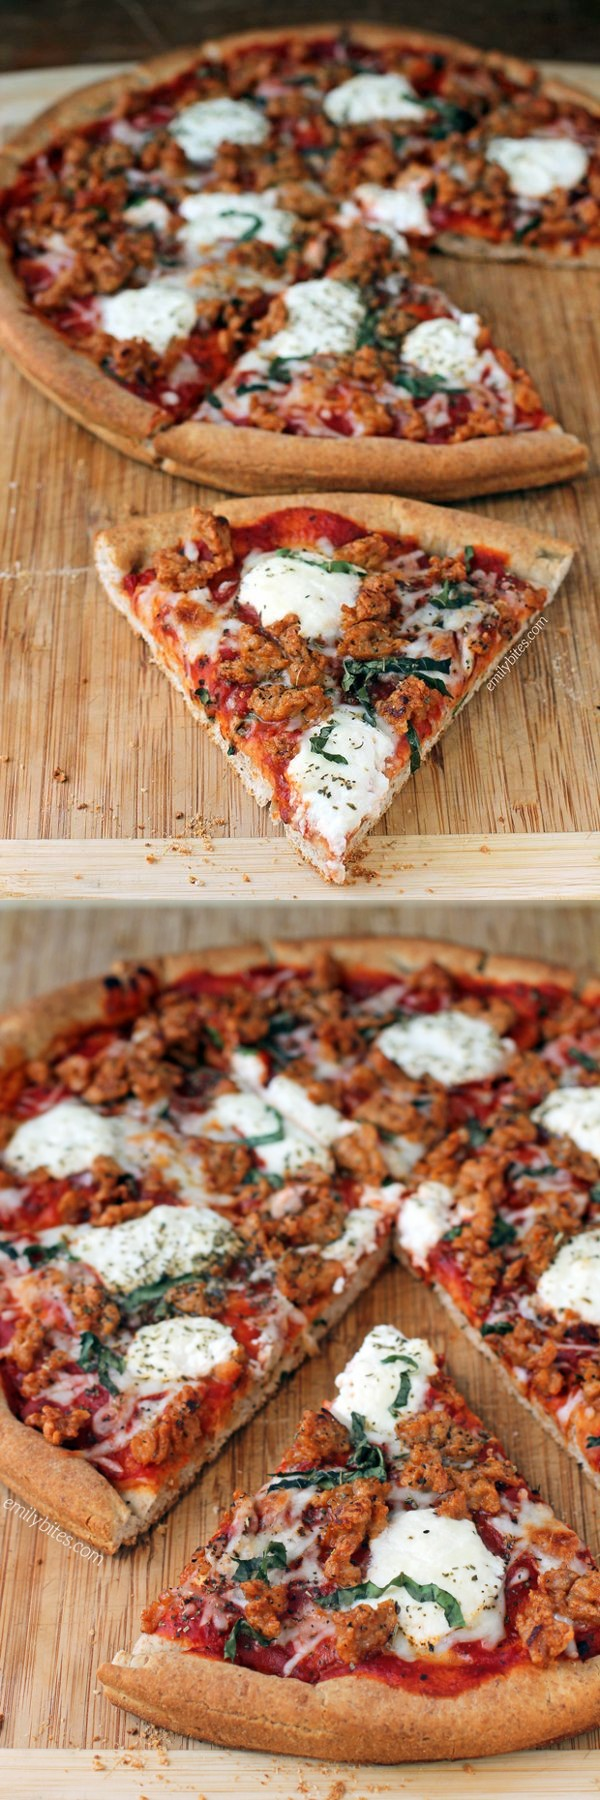 Sausage and Ricotta Pizza